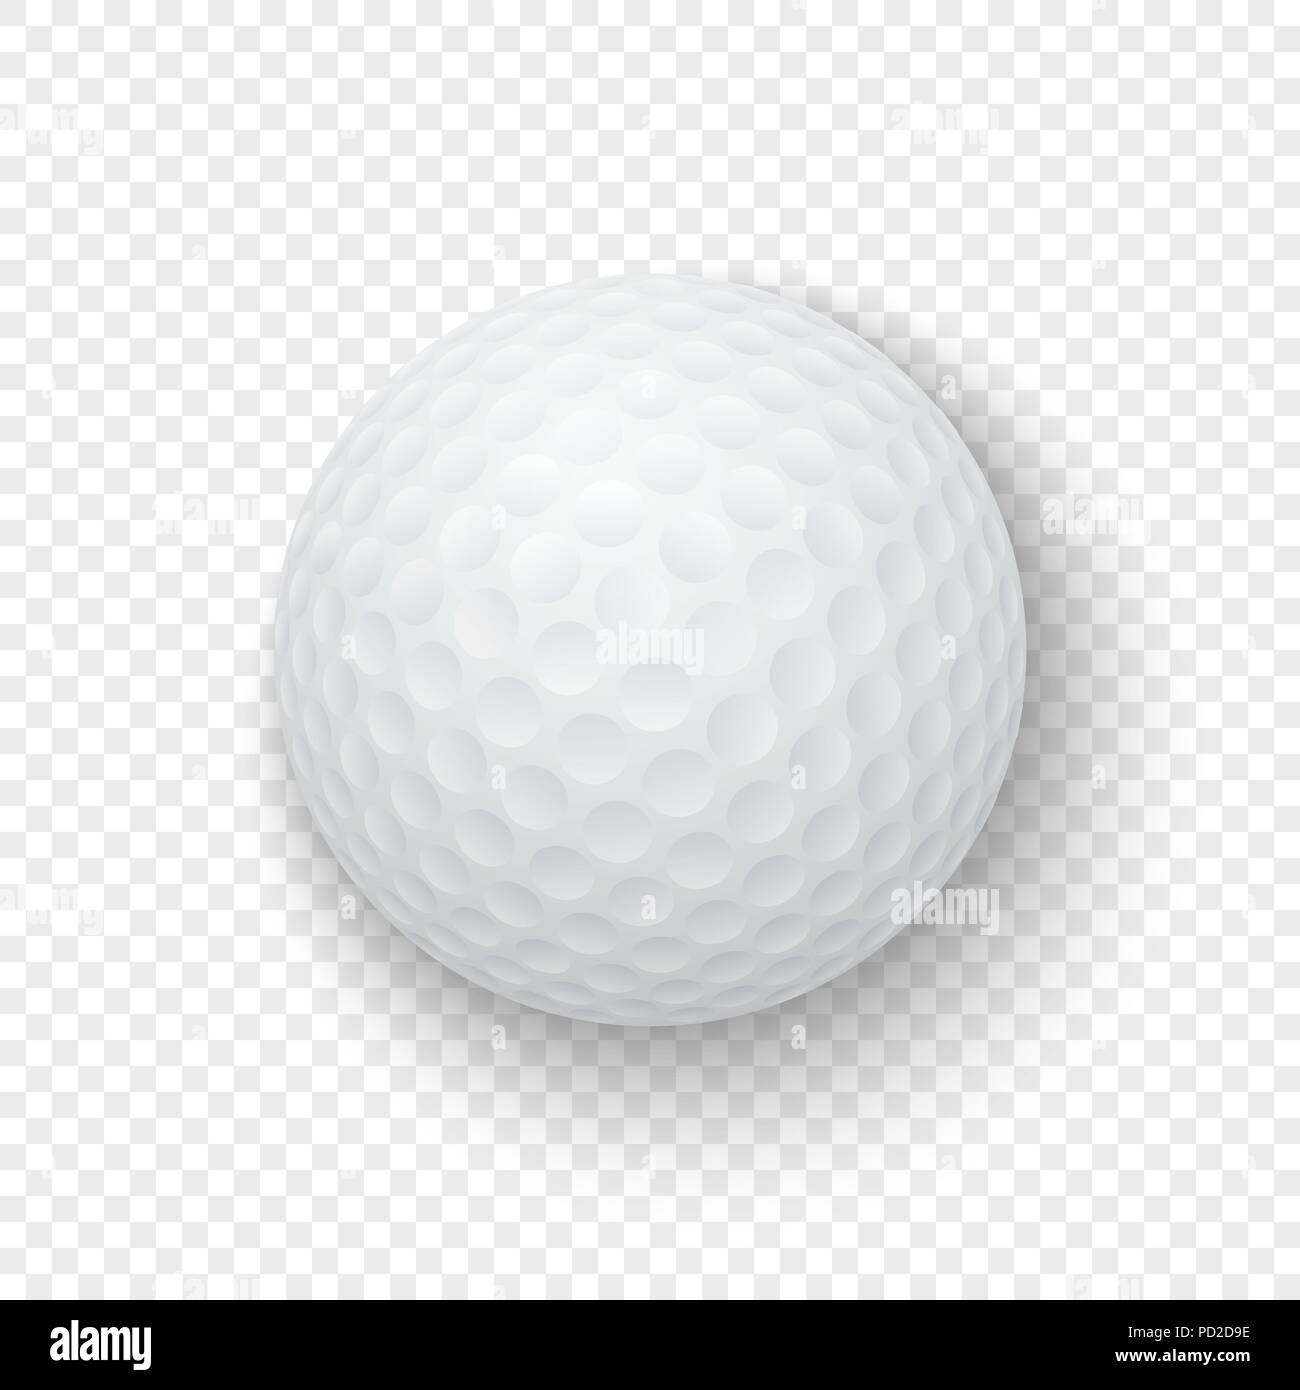 Vector Realistic 3d White Classic Golf Ball Icon Closeup Isolated On Transparency Grid Background Design Template For Graphics Mockup Top View Stock Vector Image Art Alamy